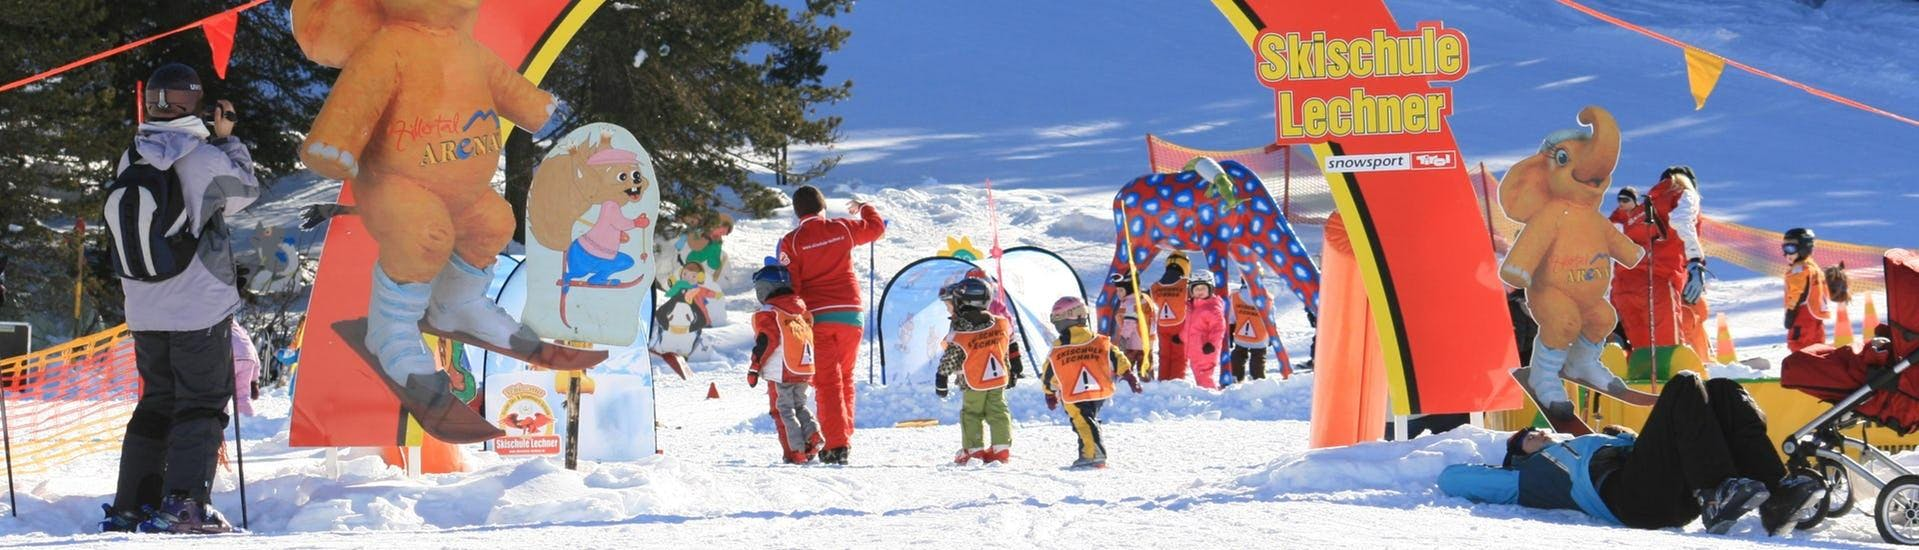 Several children are enjoying themselves in the Kinderland area during their kids ski lessons with the ski school Skischule Lechner in Zell am Ziller.